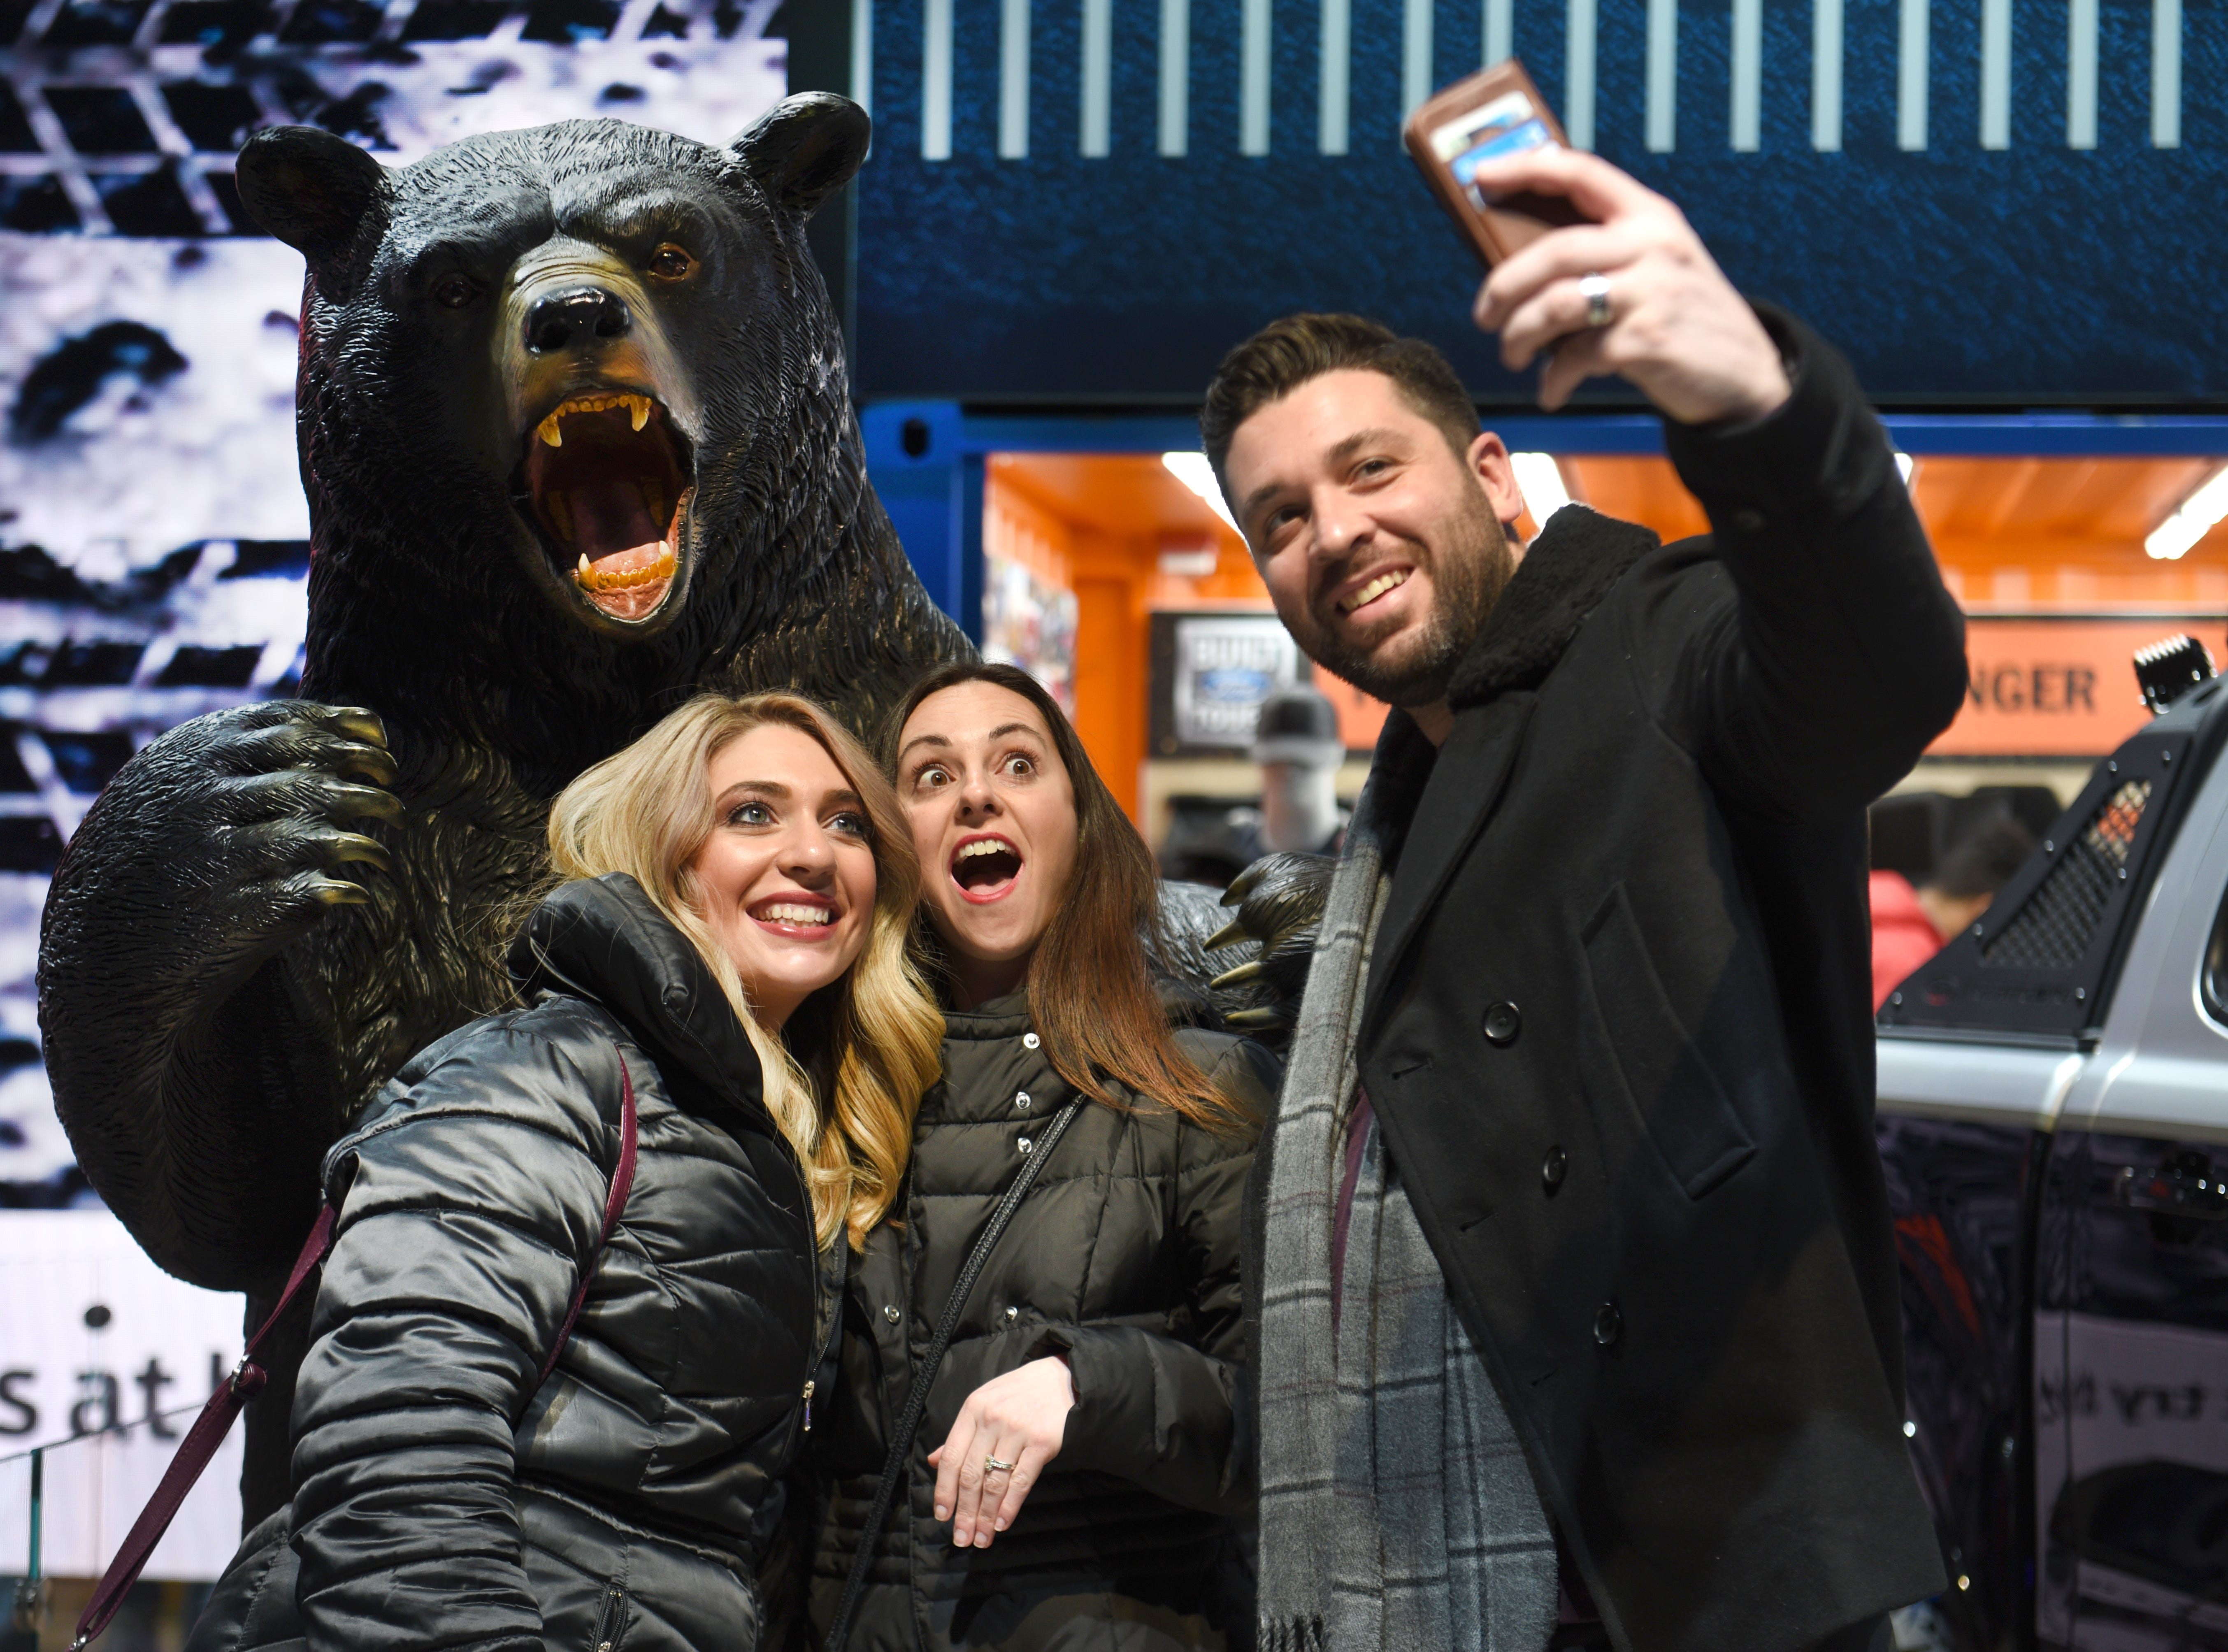 Jonathan Burgio (right) snaps a photograph with his sister Alysia Burgio (left) and his wife Amy Burgio with a grizzly bear at the Ford Motor Company display during the 2019 North American International Auto Show on Saturday, January 19, 2019.